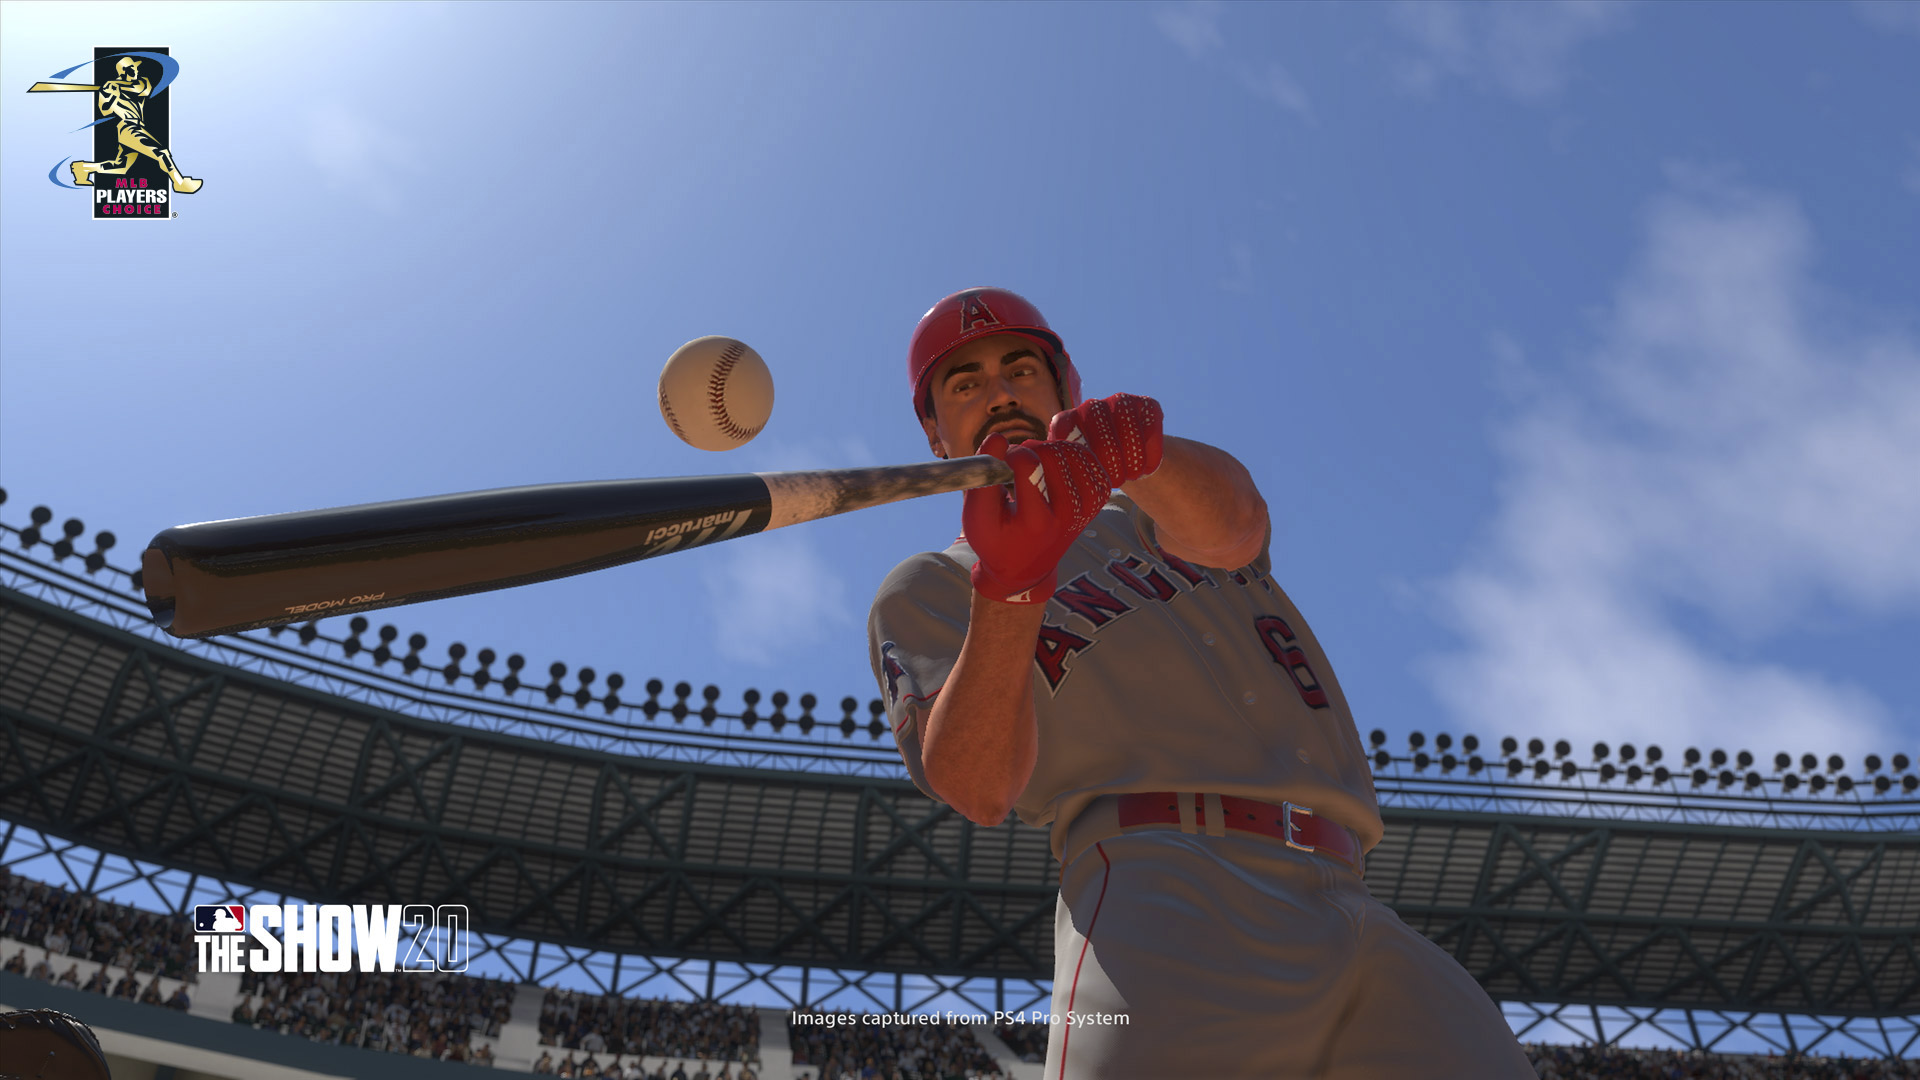 Captura de pantalla 2 de MLB The Show 20